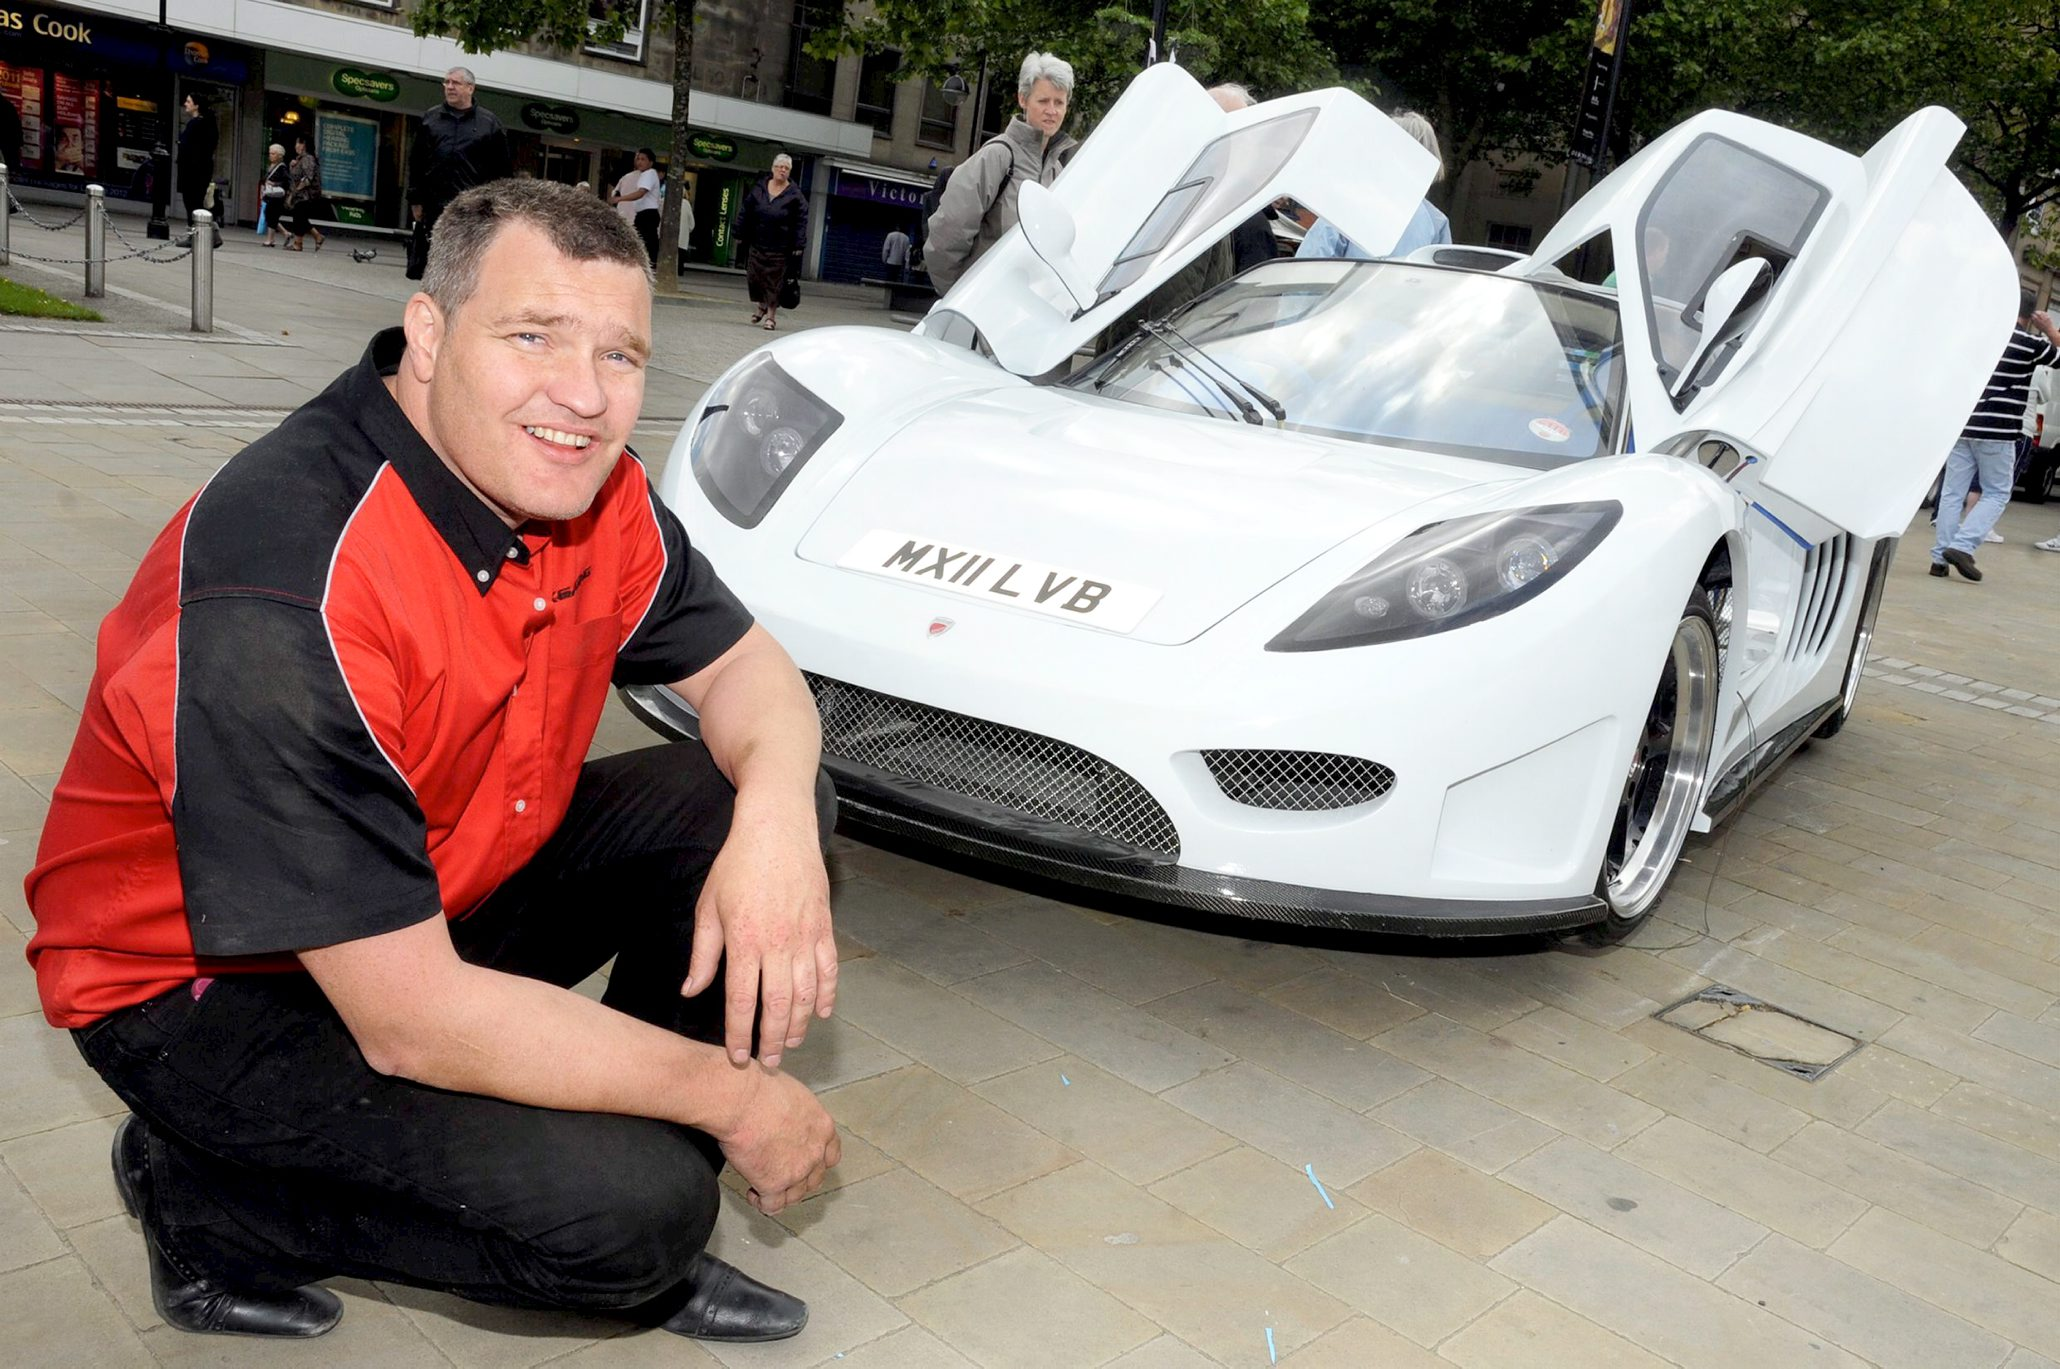 Bolton supercar on display ahead of land speed record attempt